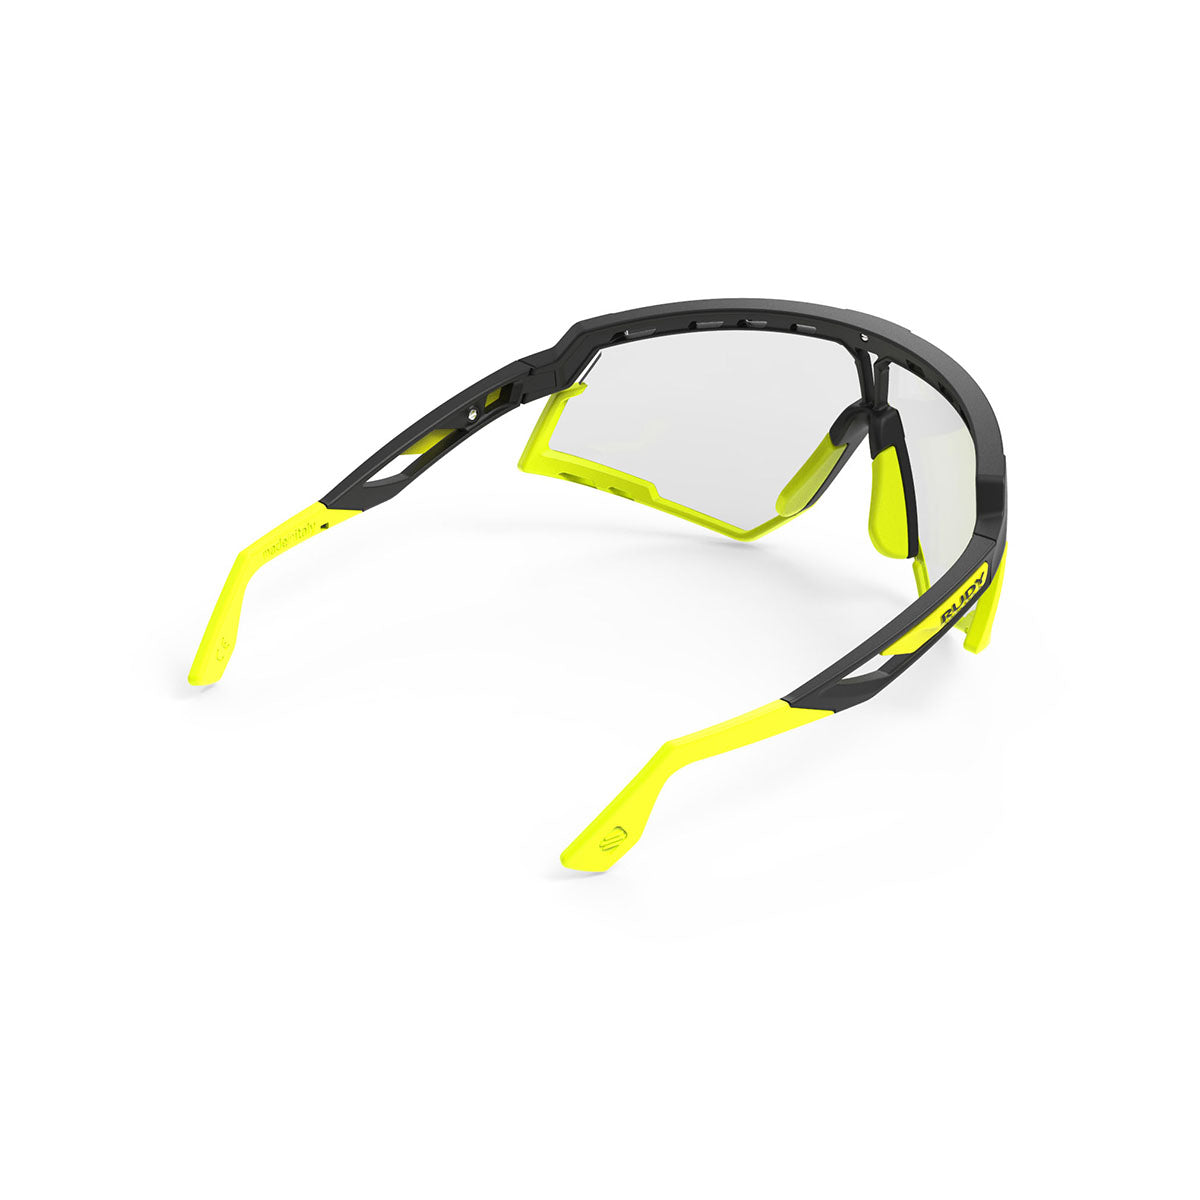 Rudy Project - Defender - frame color: Matte Black - lens color: ImpactX-2 Photochromic Clear to Laser Black - Bumper Color: Yelow Fluo - photo angle: Top Back Angle Variant Hover Image